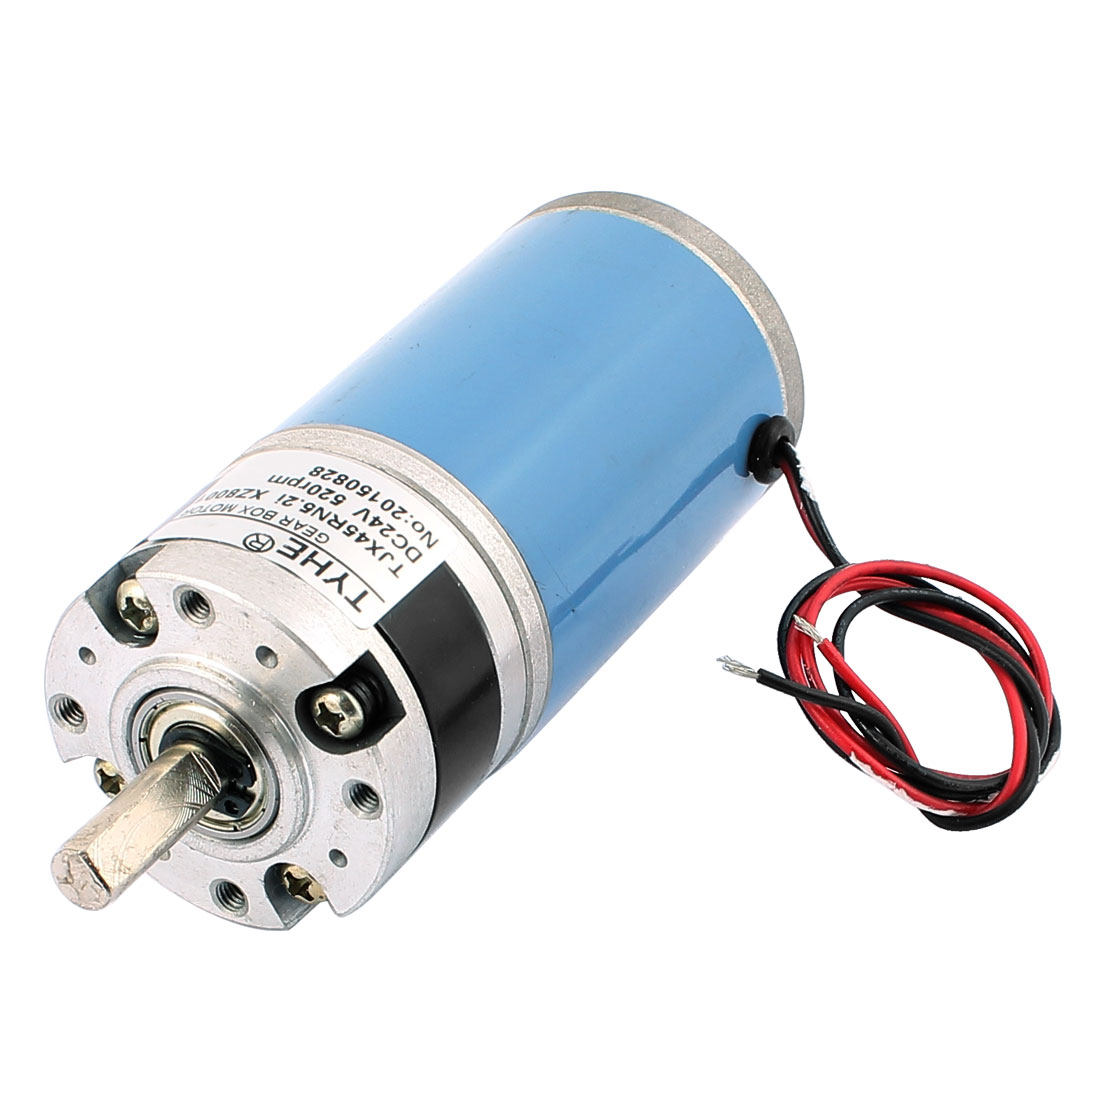 TJX45RN5.2i-ZX8001 8mm Shaft Dia DC Planetary Gearbox Reduction Motor DC24V 520RPM